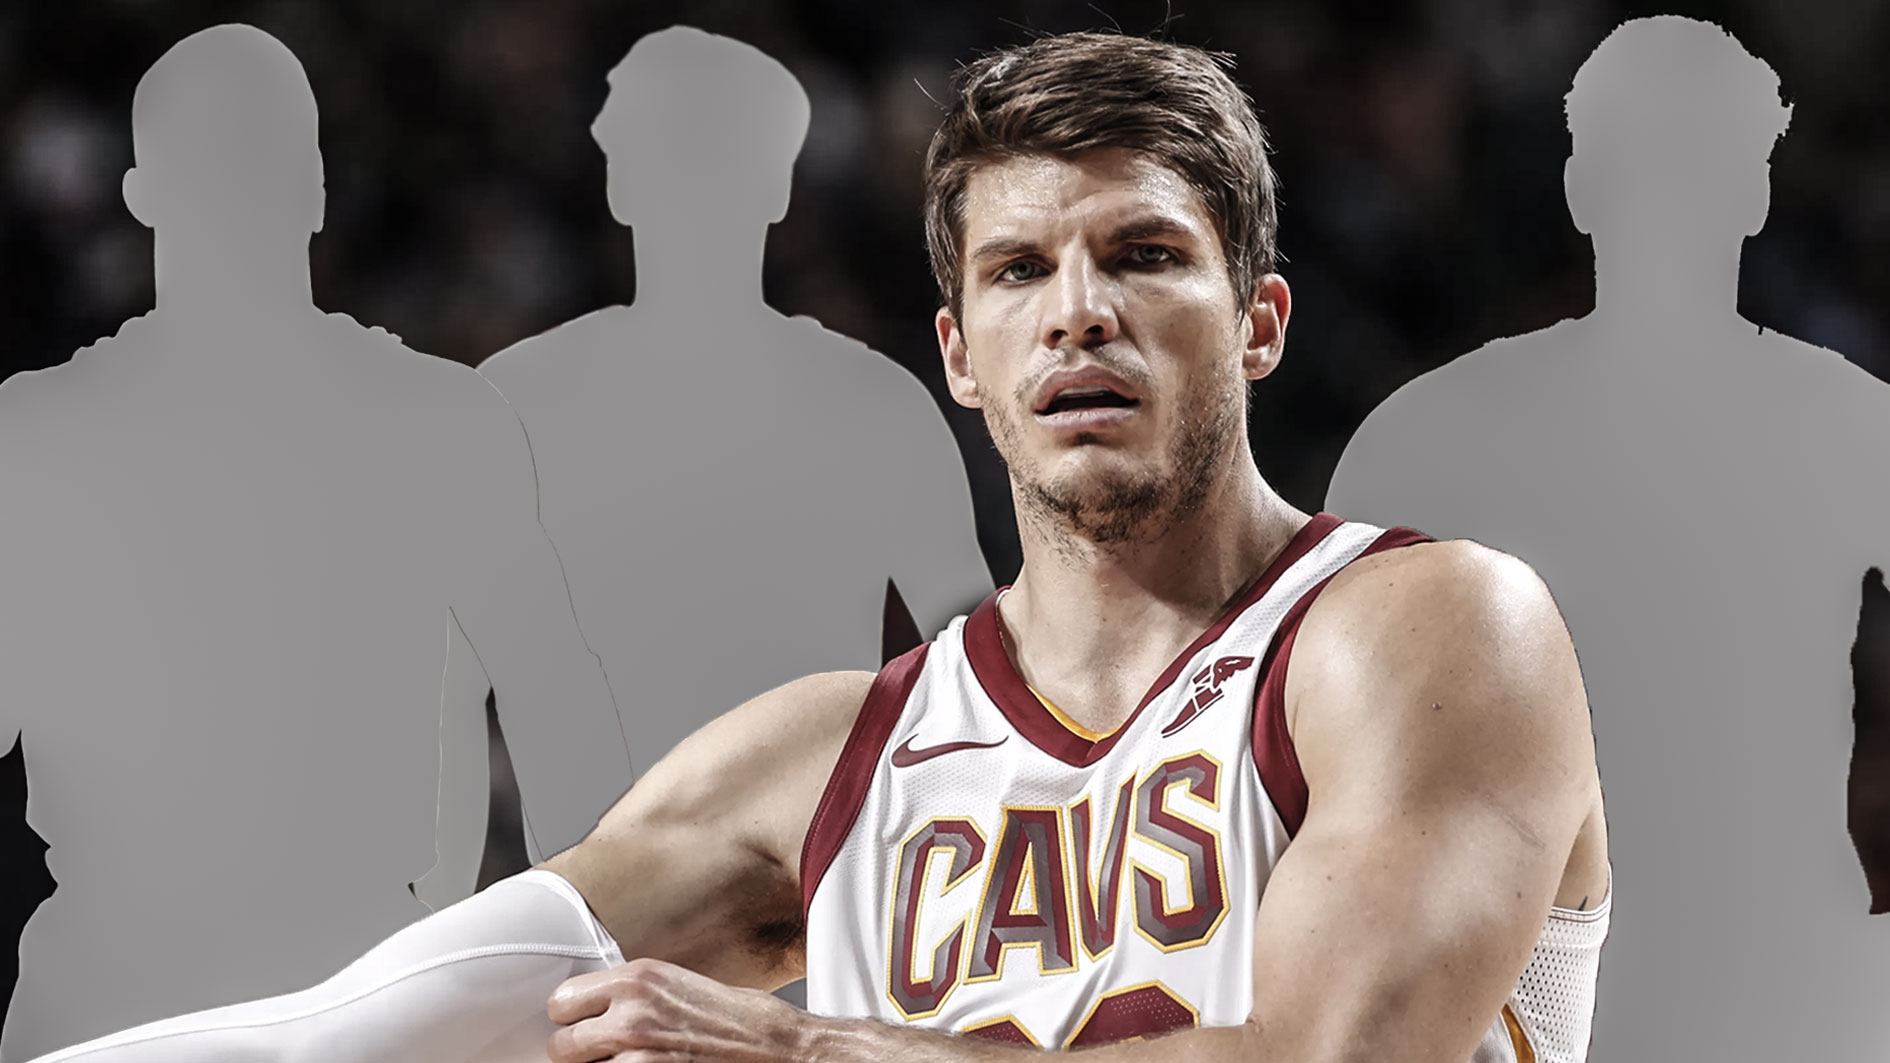 c72b429cf5ec 3 potential trade suitors for Cavs  Kyle Korver